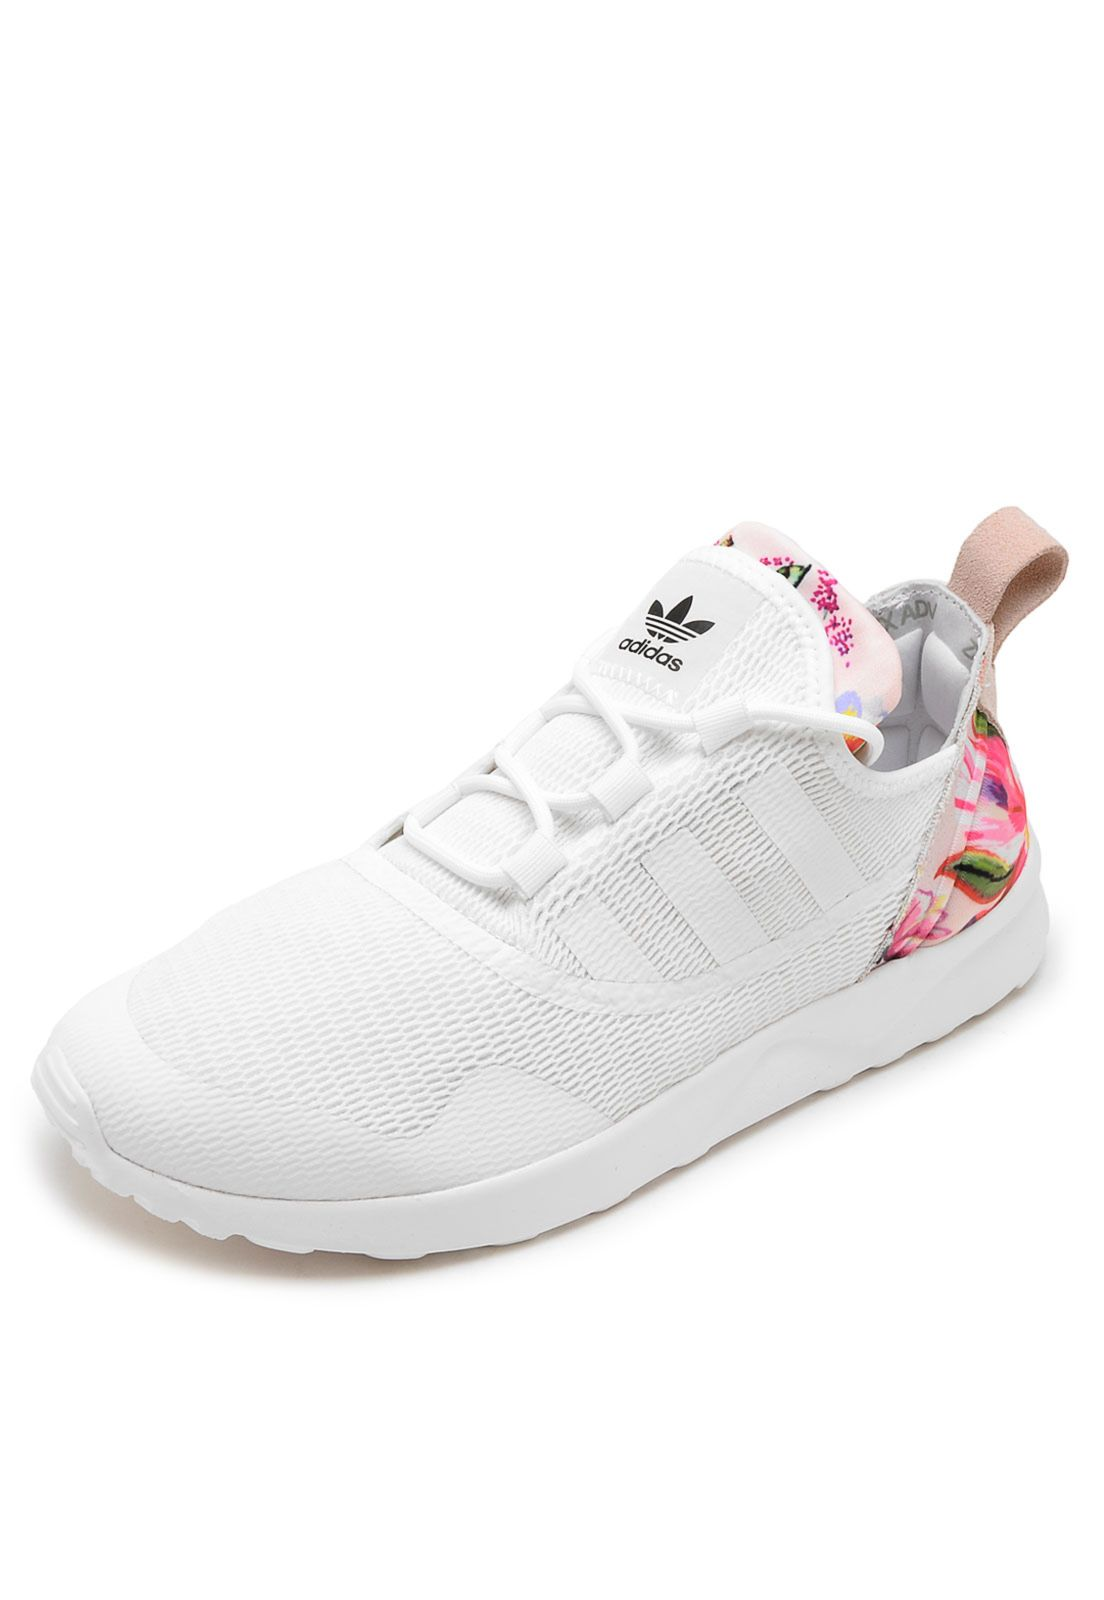 628c0306dda Tênis adidas Originals Farm ZX Flux ADV Virtue Branco - Marca adidas  Originals